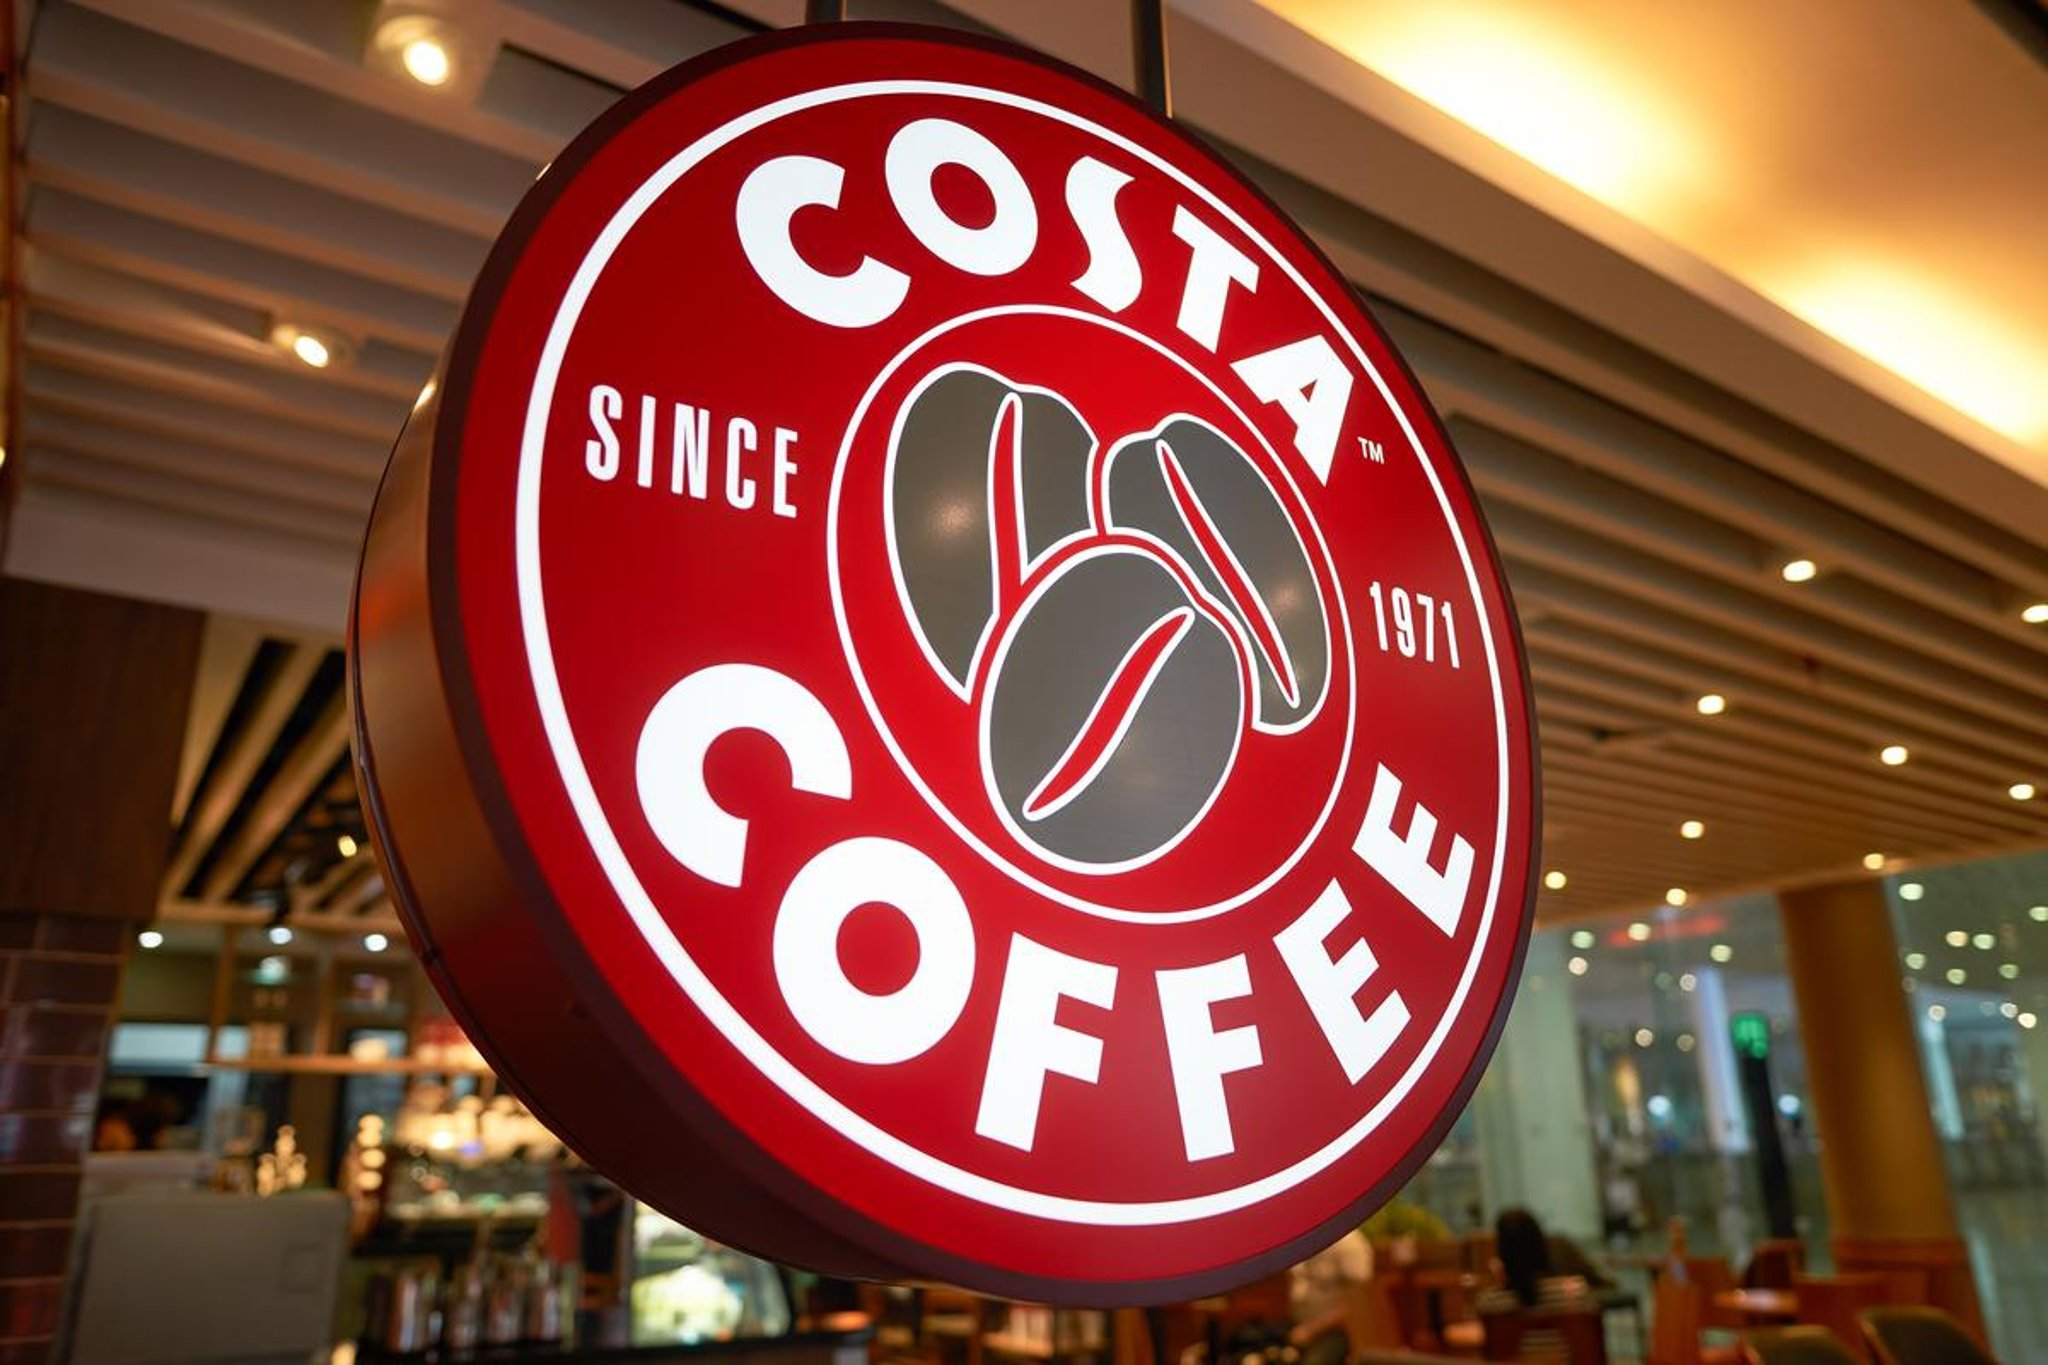 Costa Coffee is slashing prices of iced drinks to 50p this week - how to get one